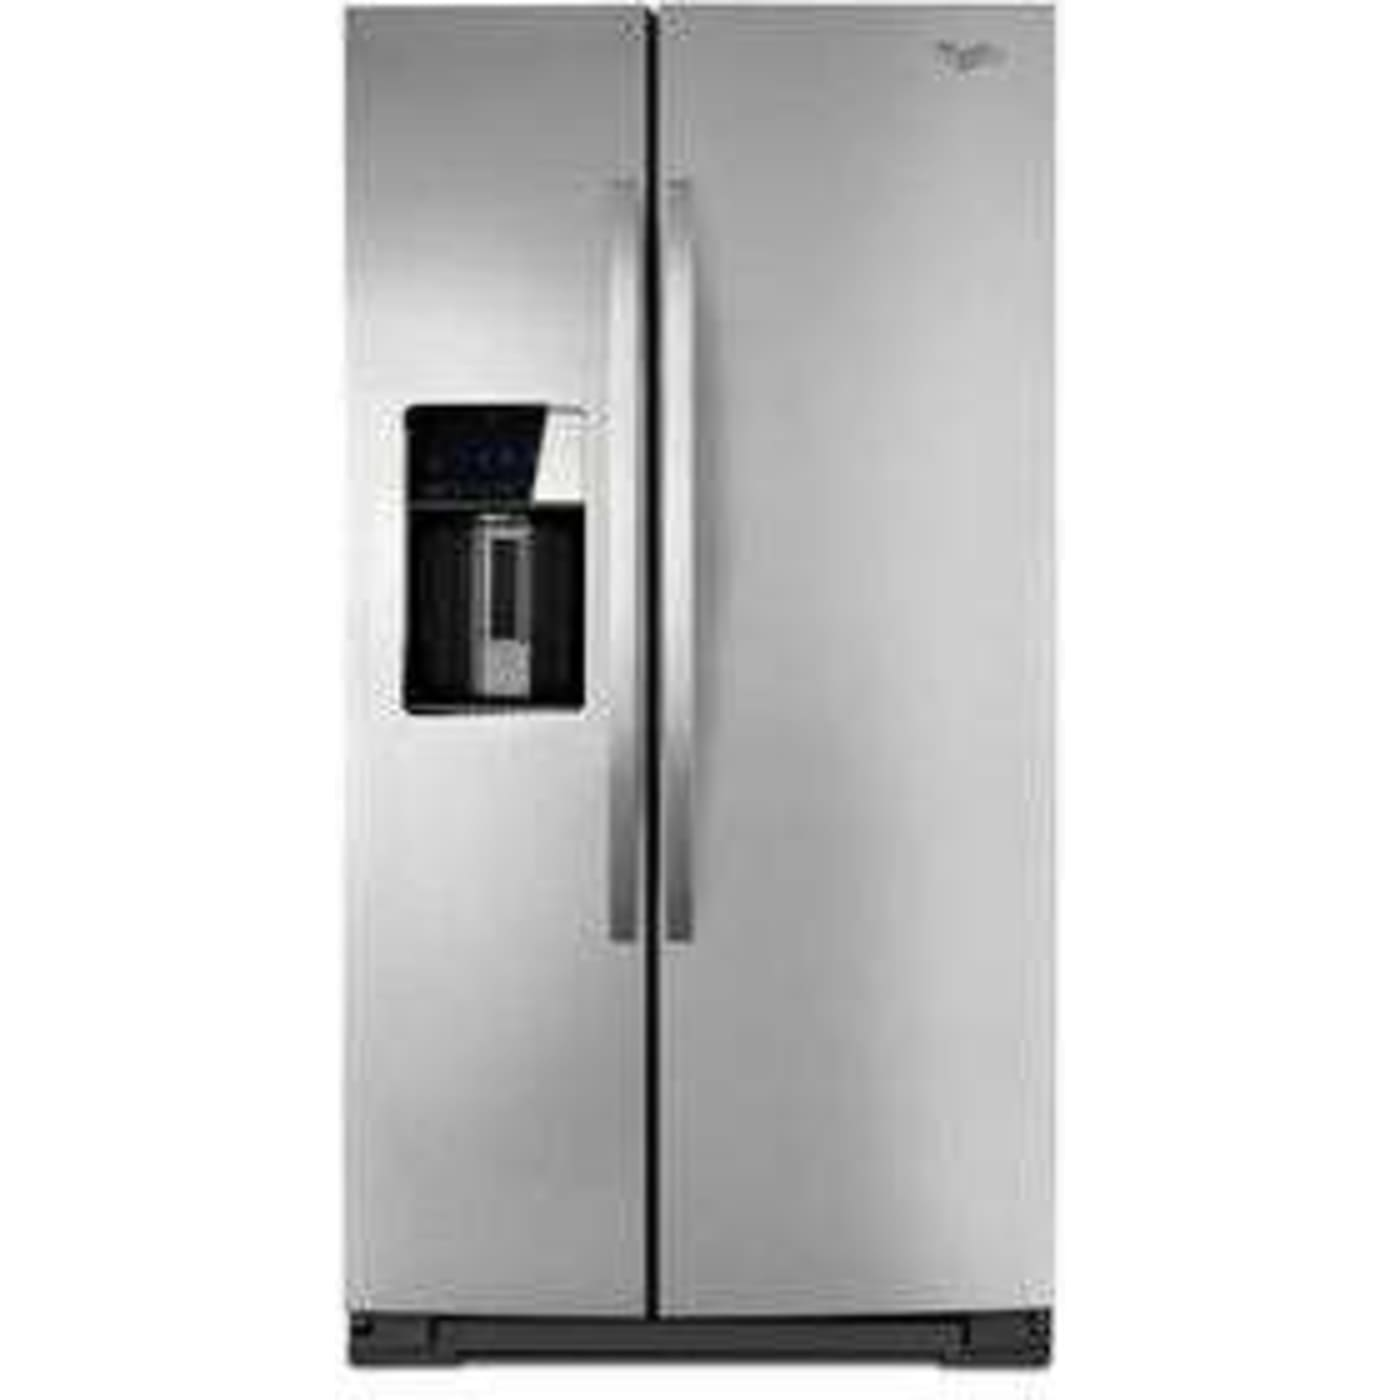 Whirlpool Wrs950Siam 36 297 Cu Ft Stainless Steel Side By Side Refrigerator